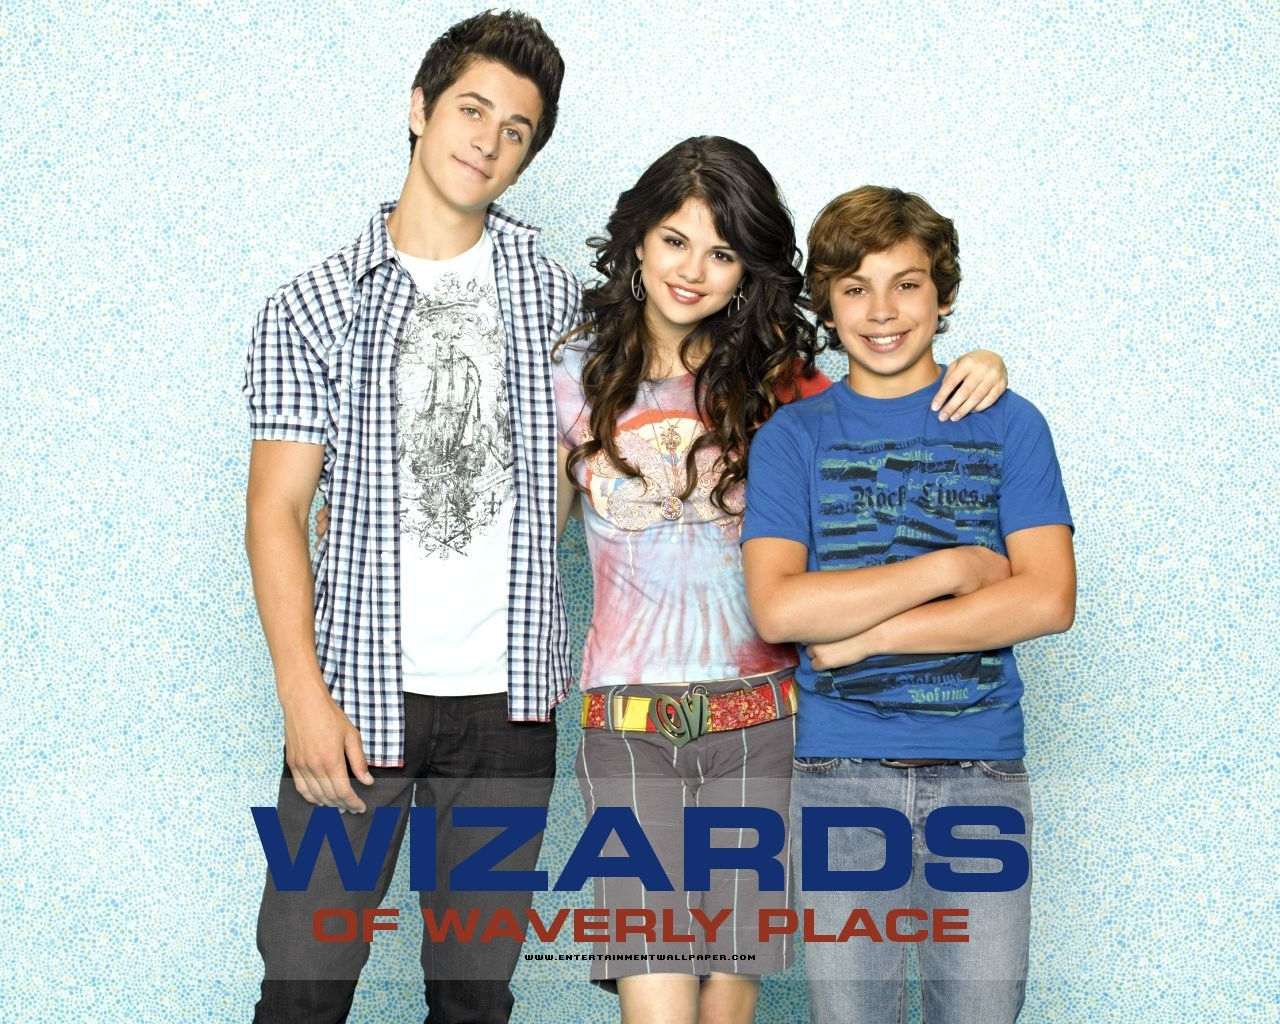 Wizards of Waverly Place Theme Song | Movie Theme Songs ... |The Wizards Wiverly Place